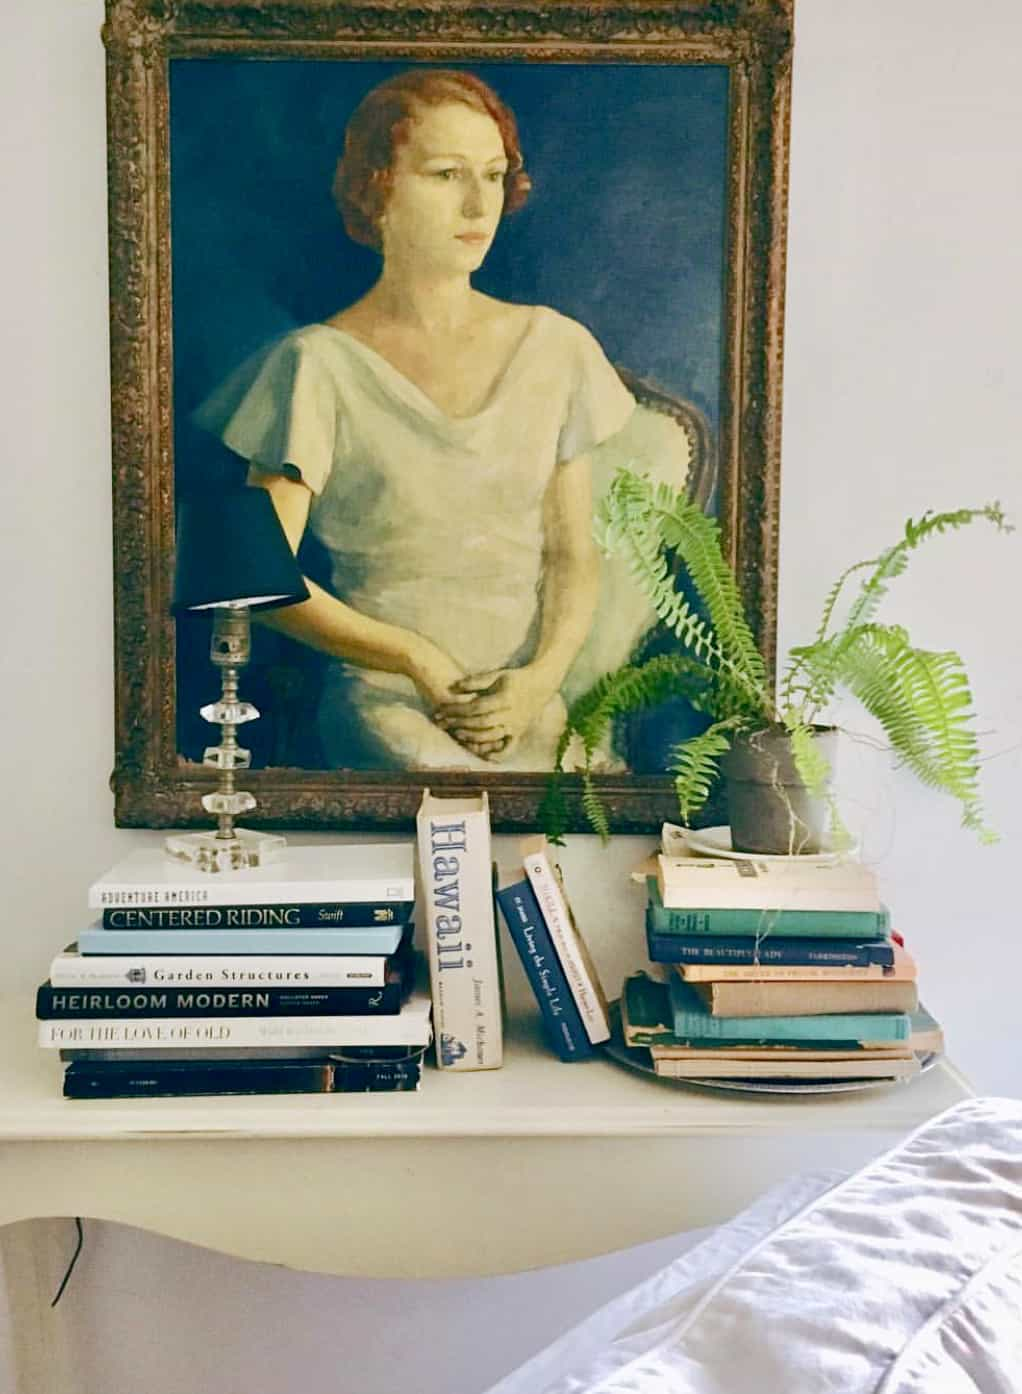 vignette with vintage painting